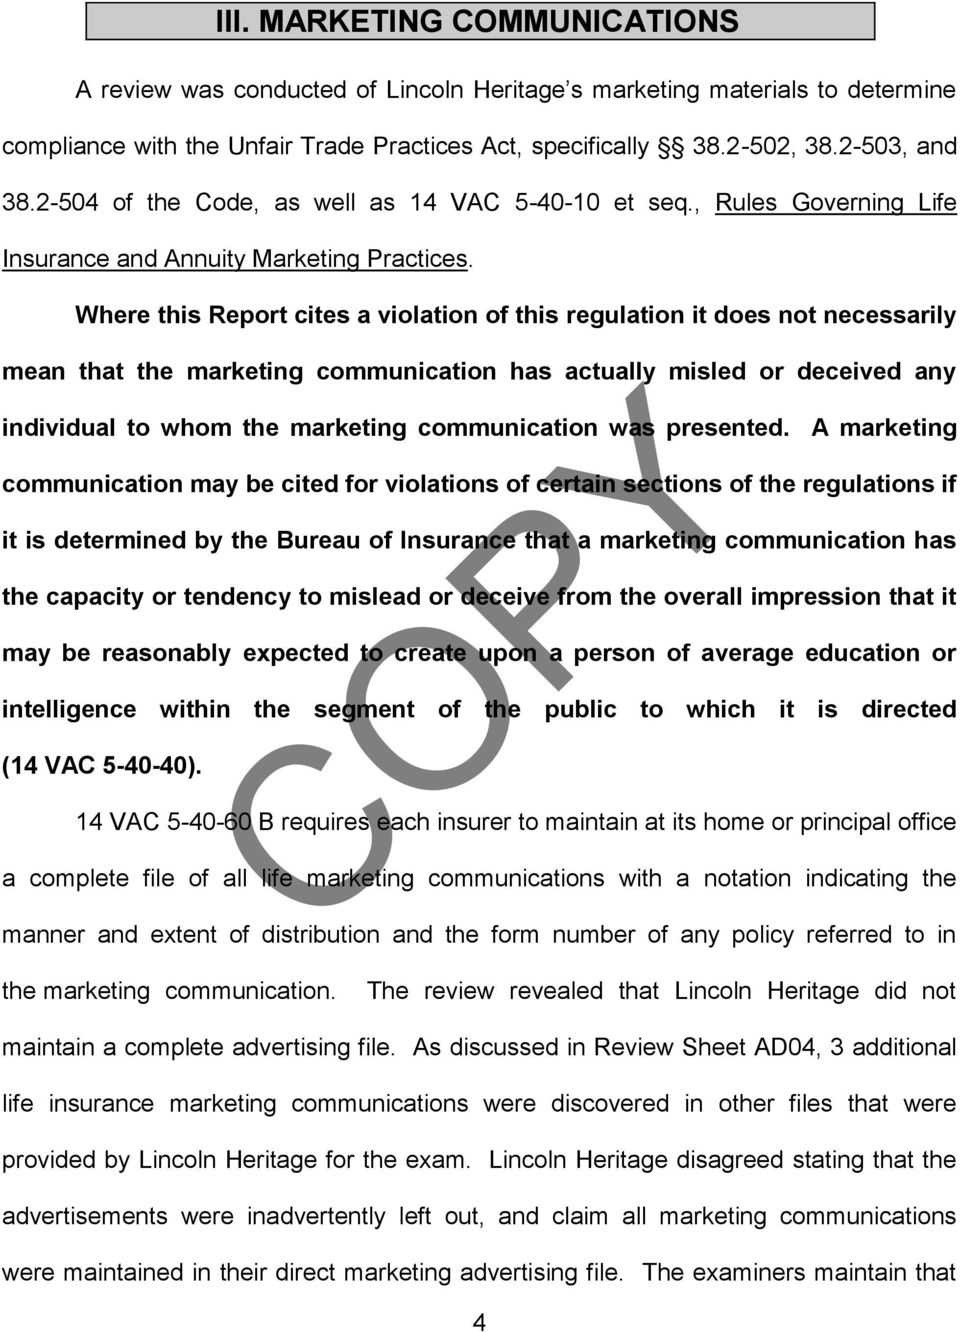 Where this Report cites a violation of this regulation it does not necessarily mean that the marketing communication has actually misled or deceived any individual to whom the marketing communication